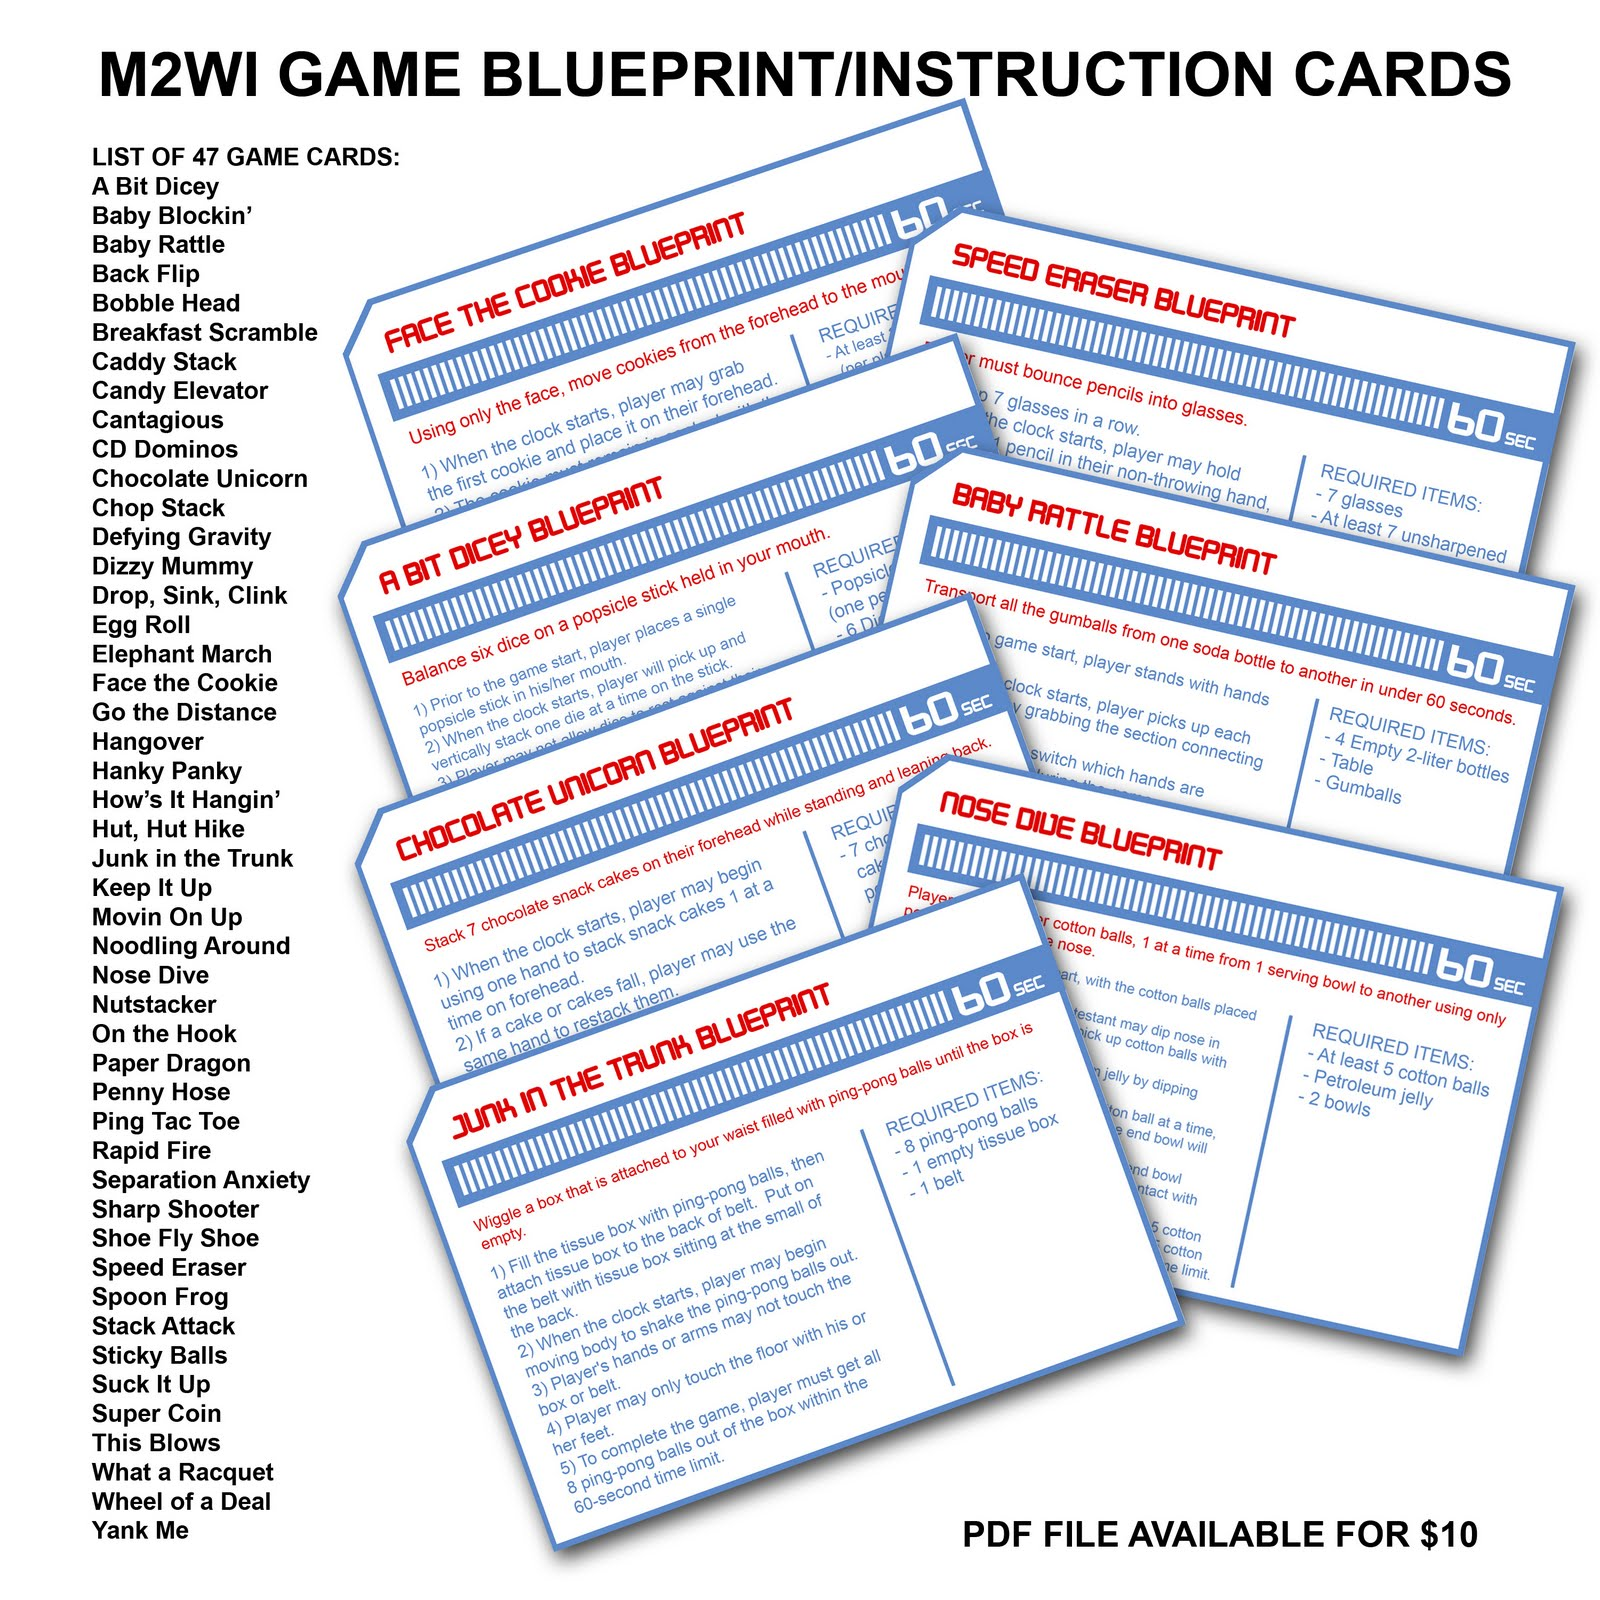 How to download minute to win it games blueprints: intel download rst.